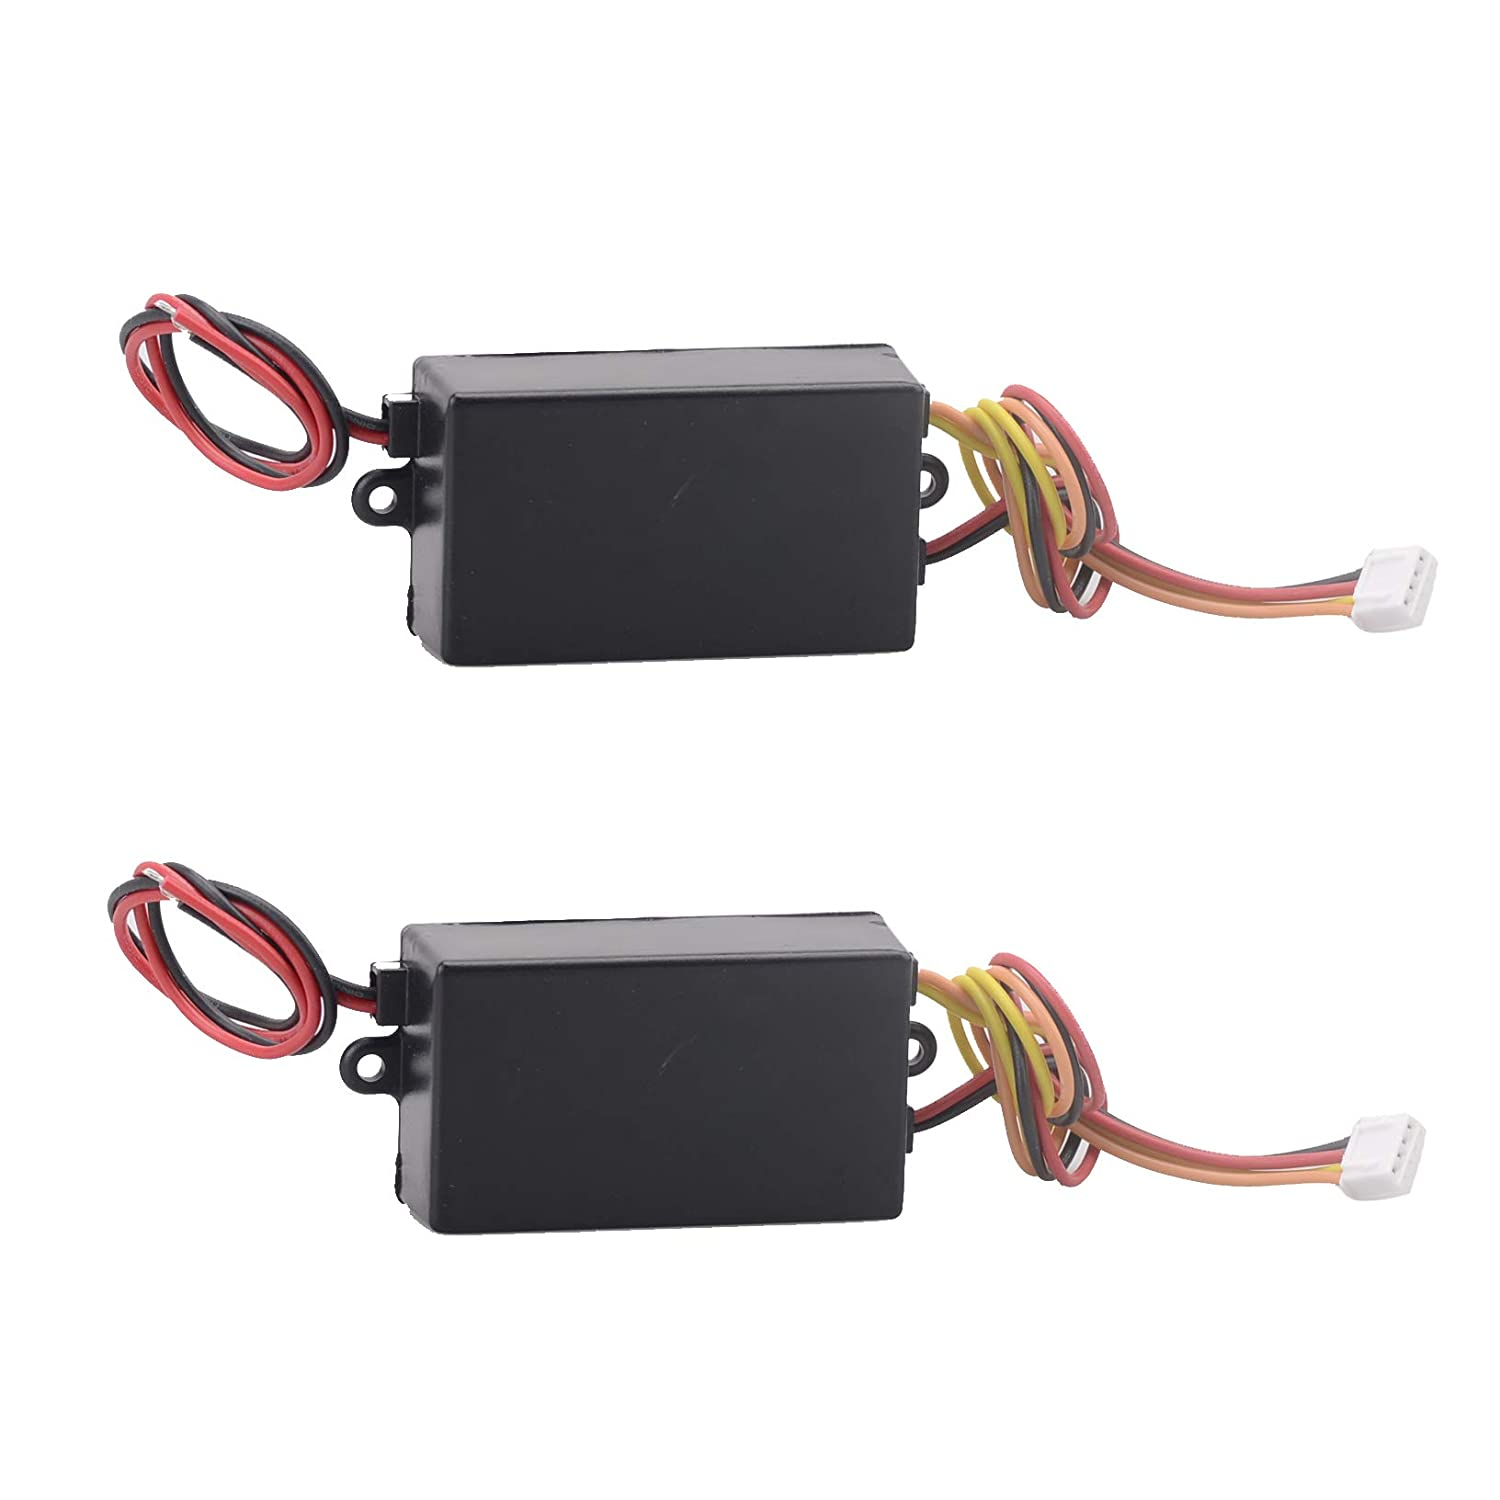 2PCS 12V Mallofusa Universal Car Tail LED Light 3-Step Sequential Dynamic Chase Flash Module Boxes Controller for Front Rear Turn Signal Light Retrofit Use